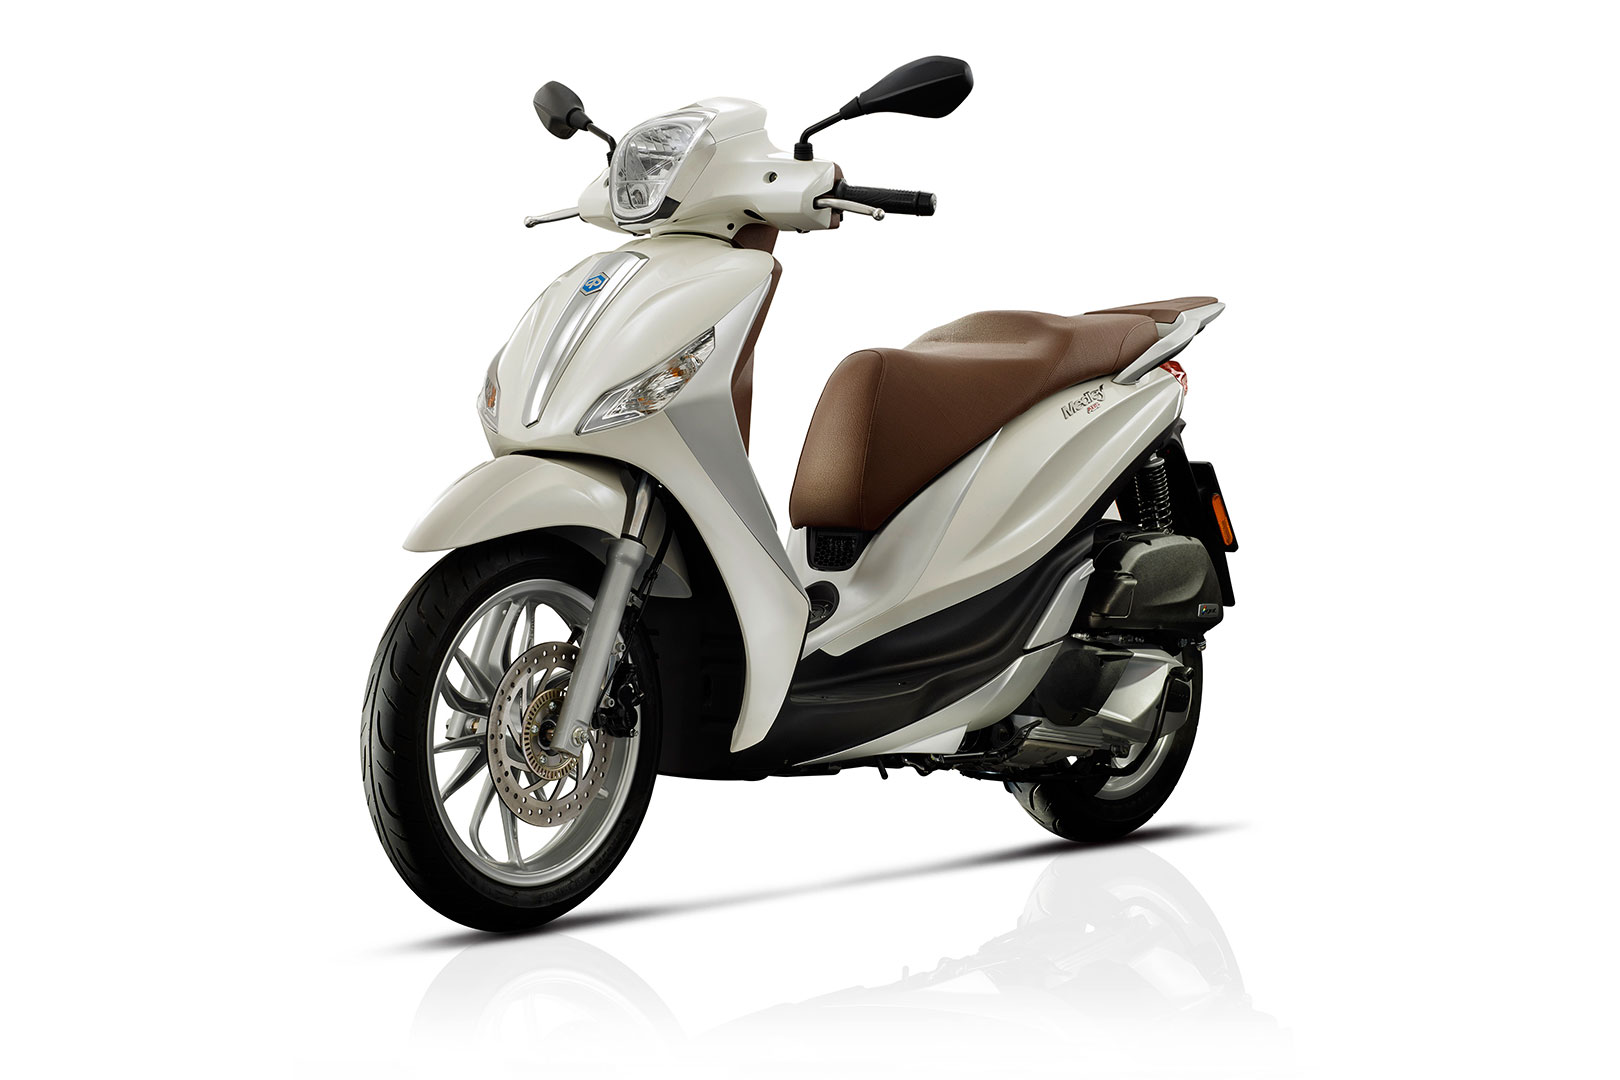 Achat Piaggio Medley ABS 125 cm3 neuf à Nice chez Scoot Center-3